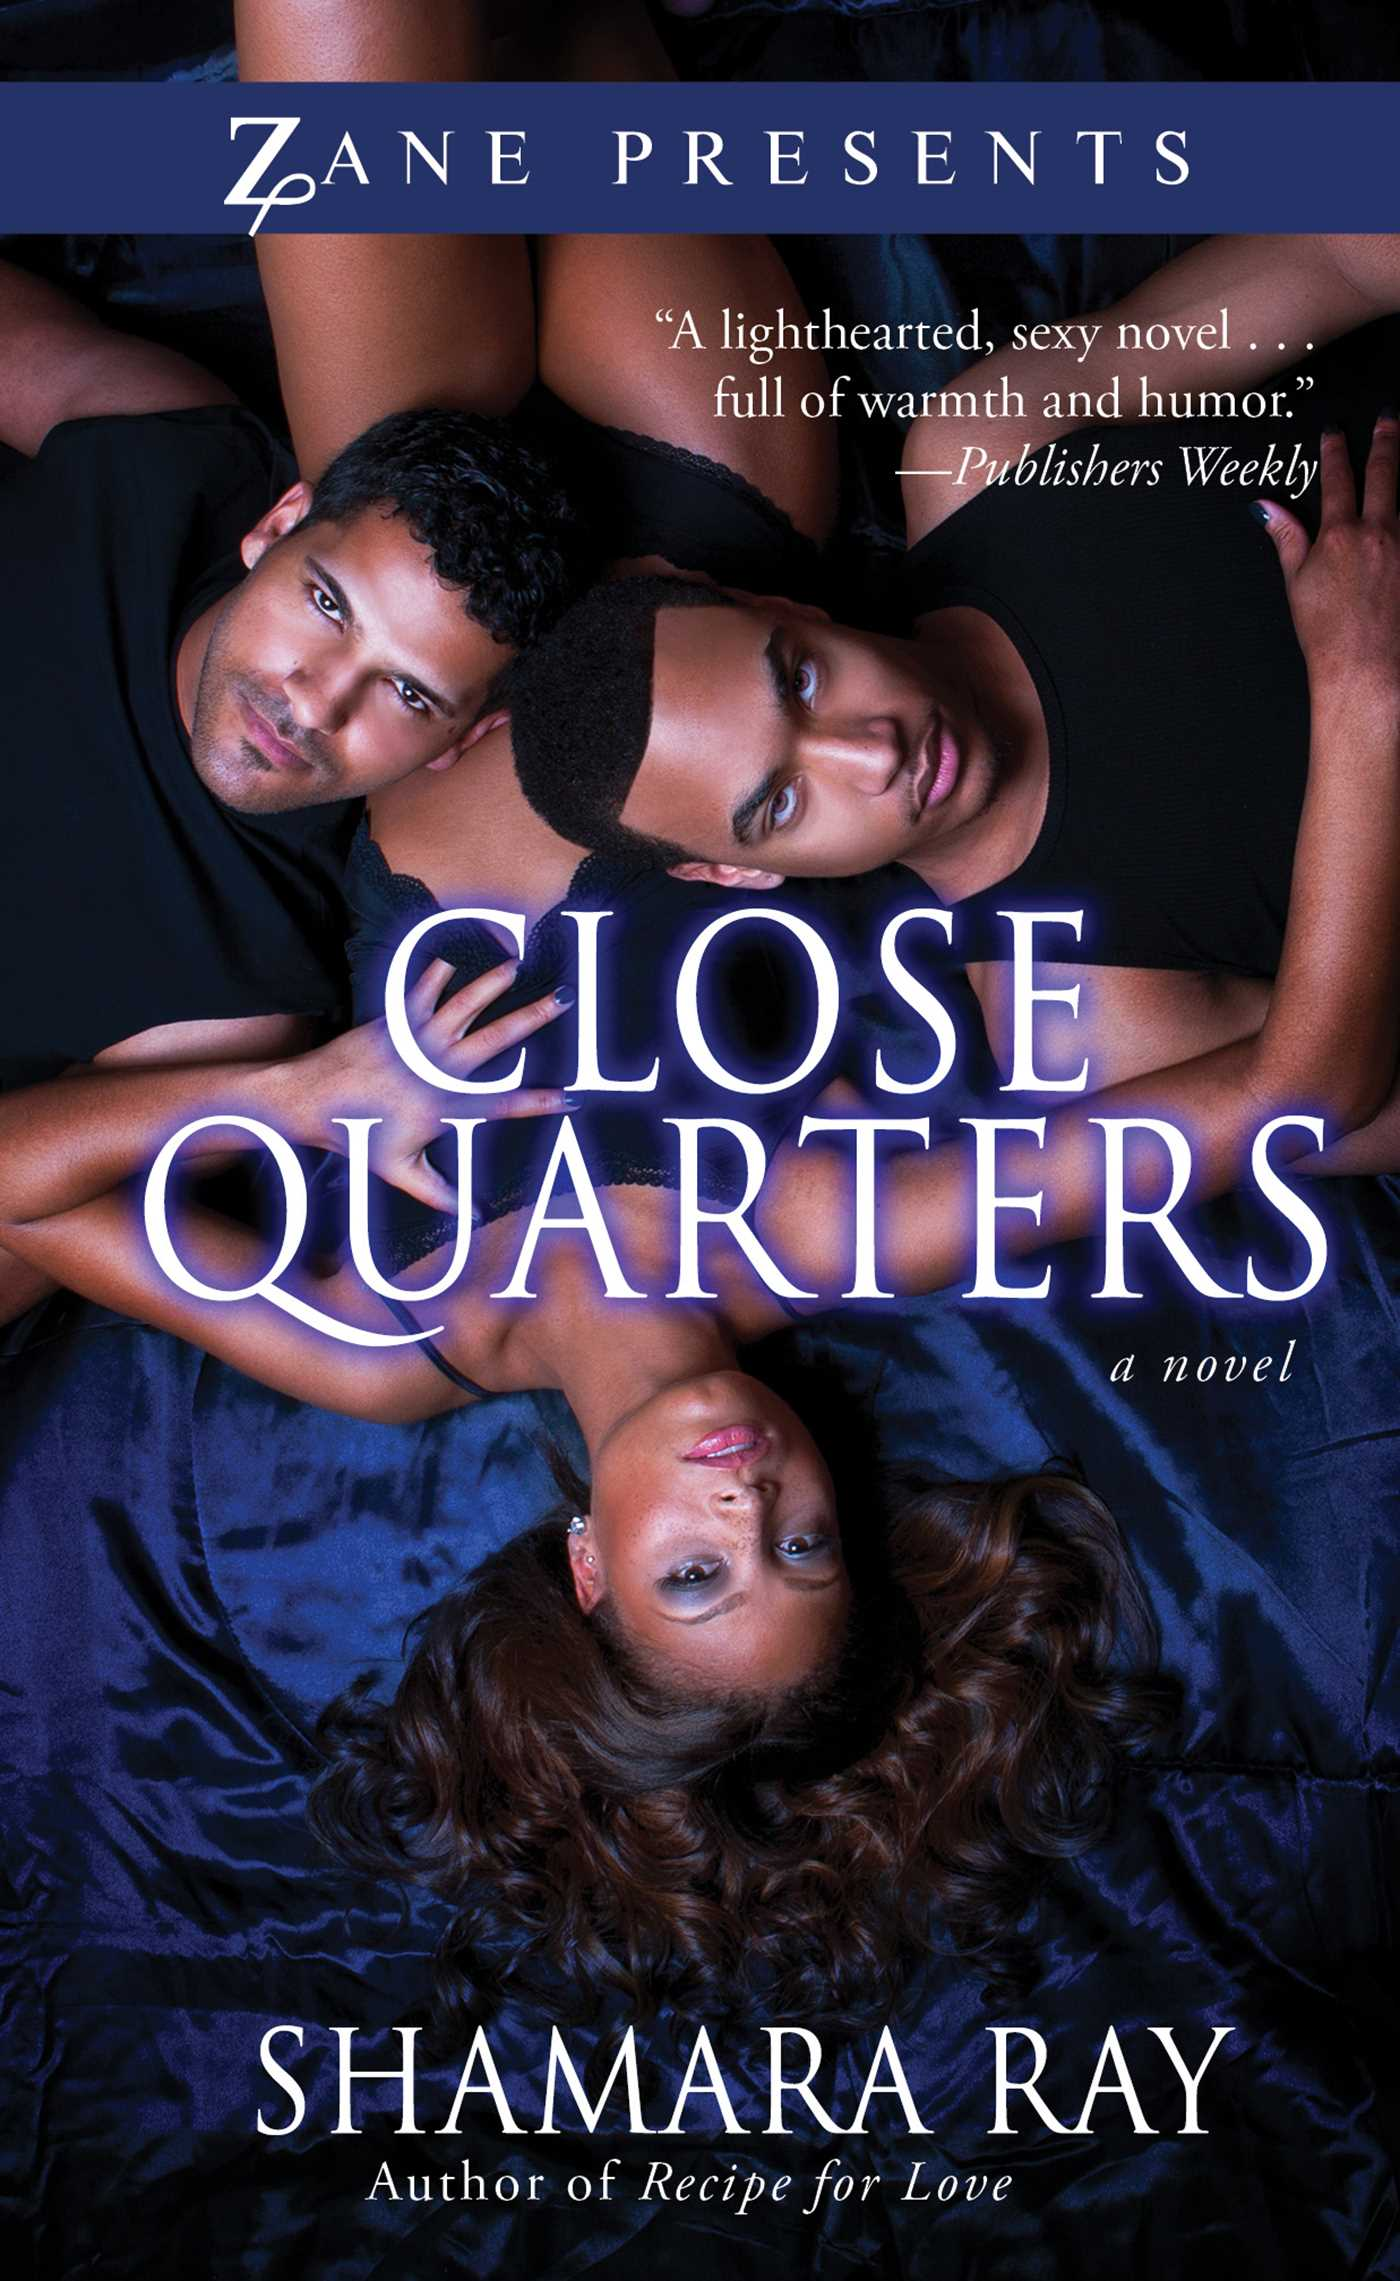 Close-quarters-9781451679083_hr